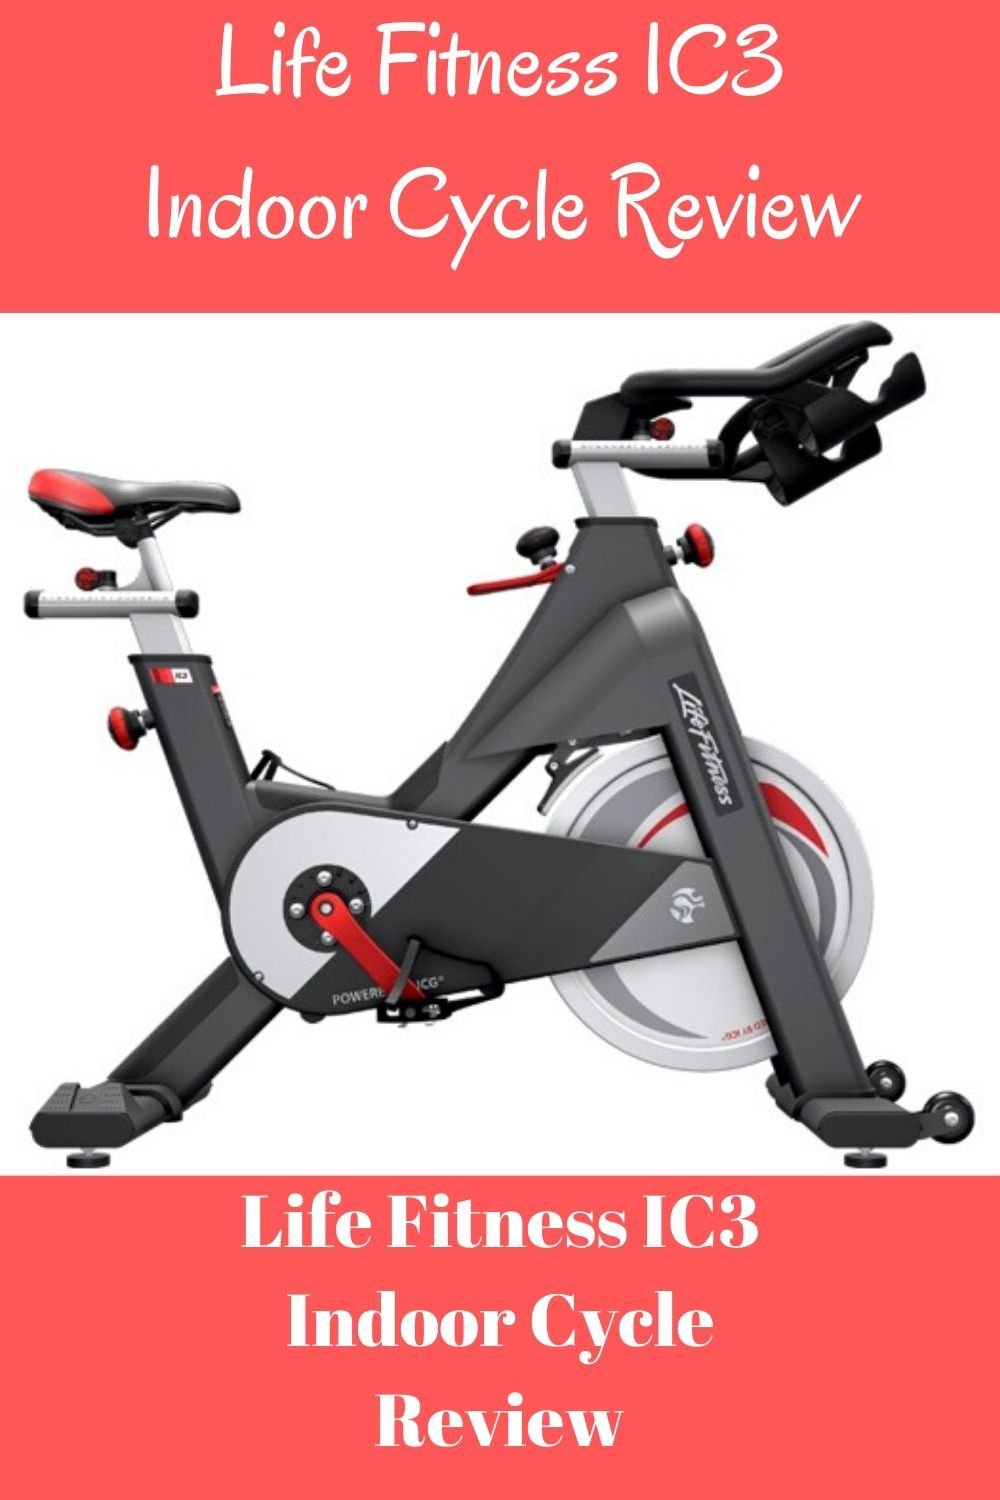 Life Fitness Ic3 Indoor Cycle Review In 2020